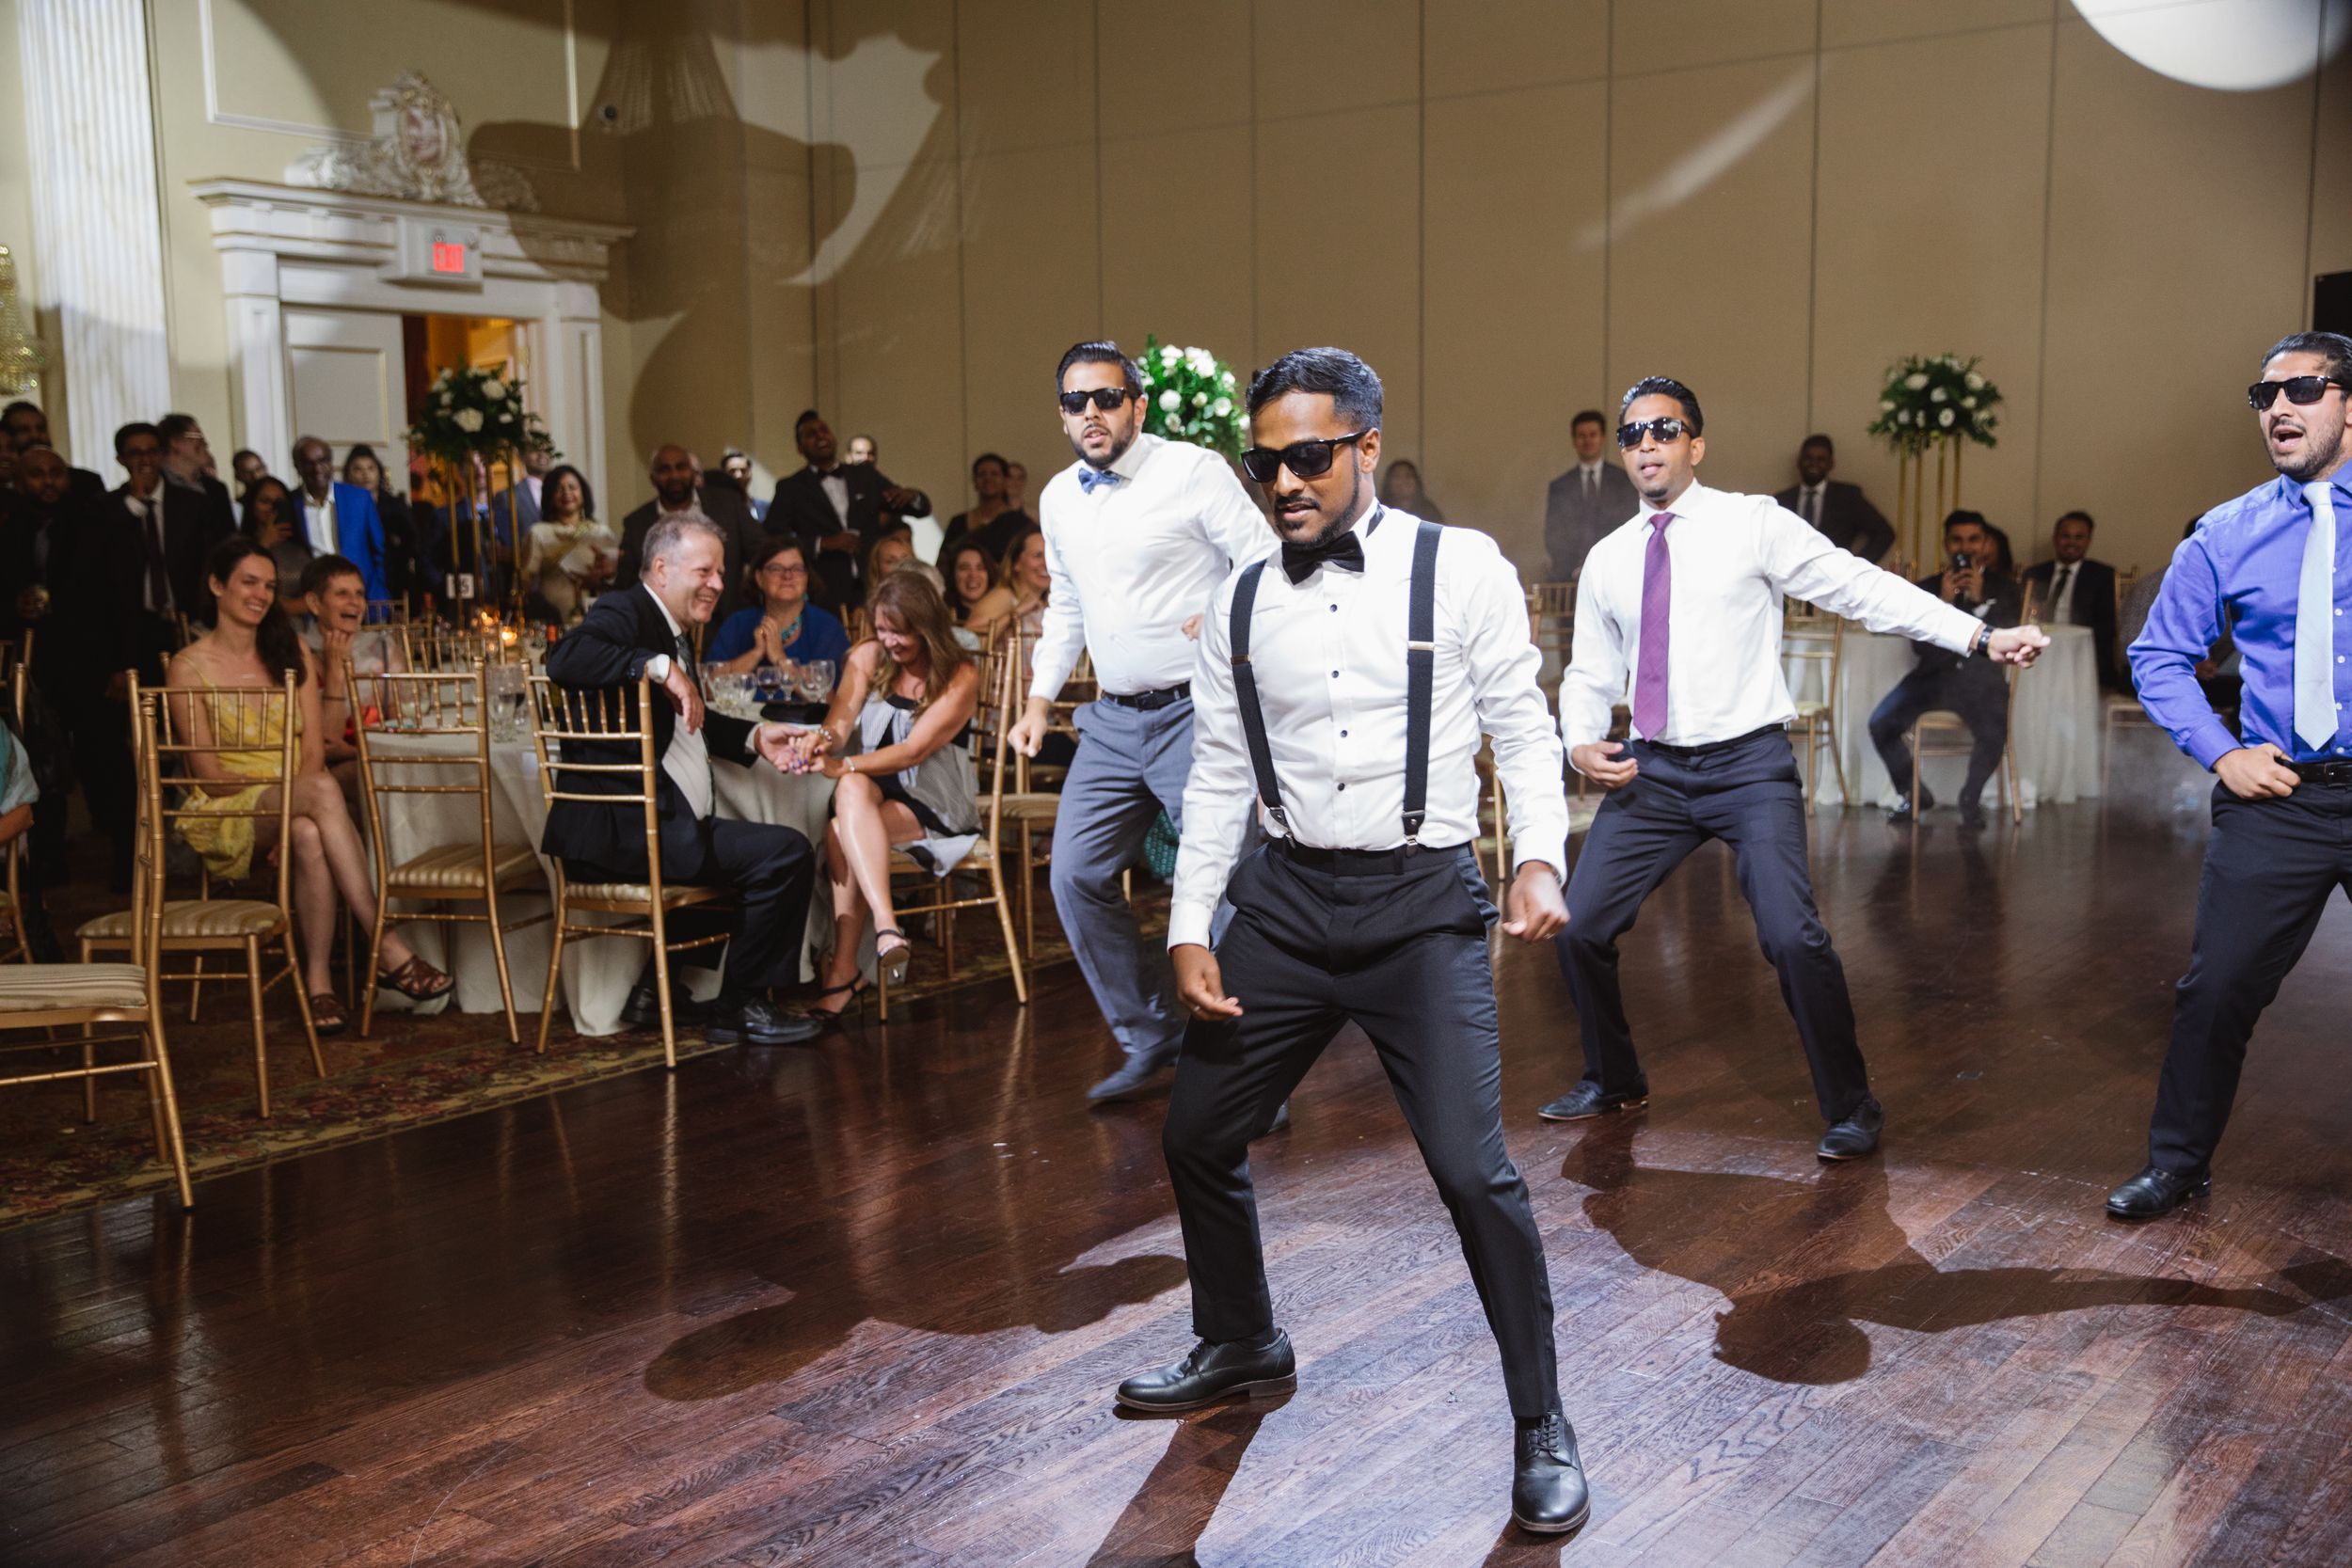 groom dancing with groomsmen and sunglasses